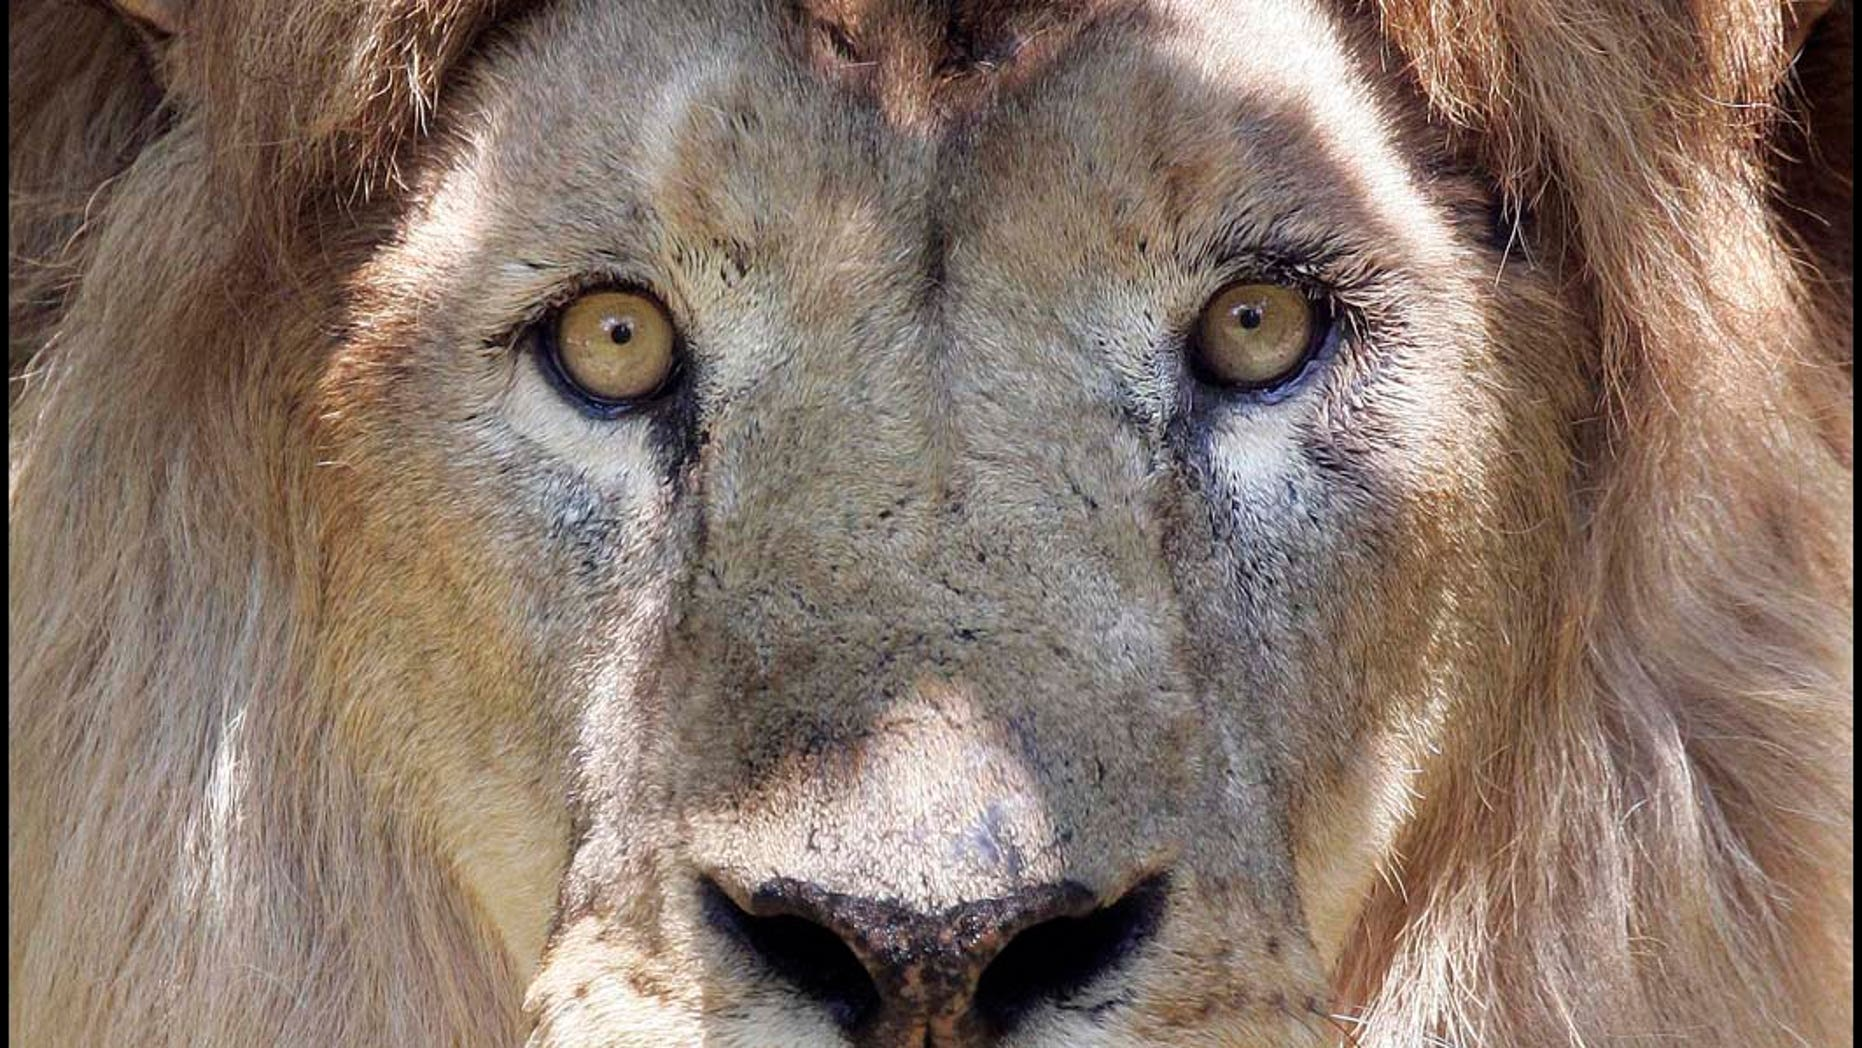 A 14-year-old lion named Christopher looks out from the shade of its enclosure at Franklin Park Zoo in Boston, Tuesday, June 26, 2007. Temperatures in the Boston area were expected to reach into the 90s on Tuesday. (AP Photo/Michael Dwyer)